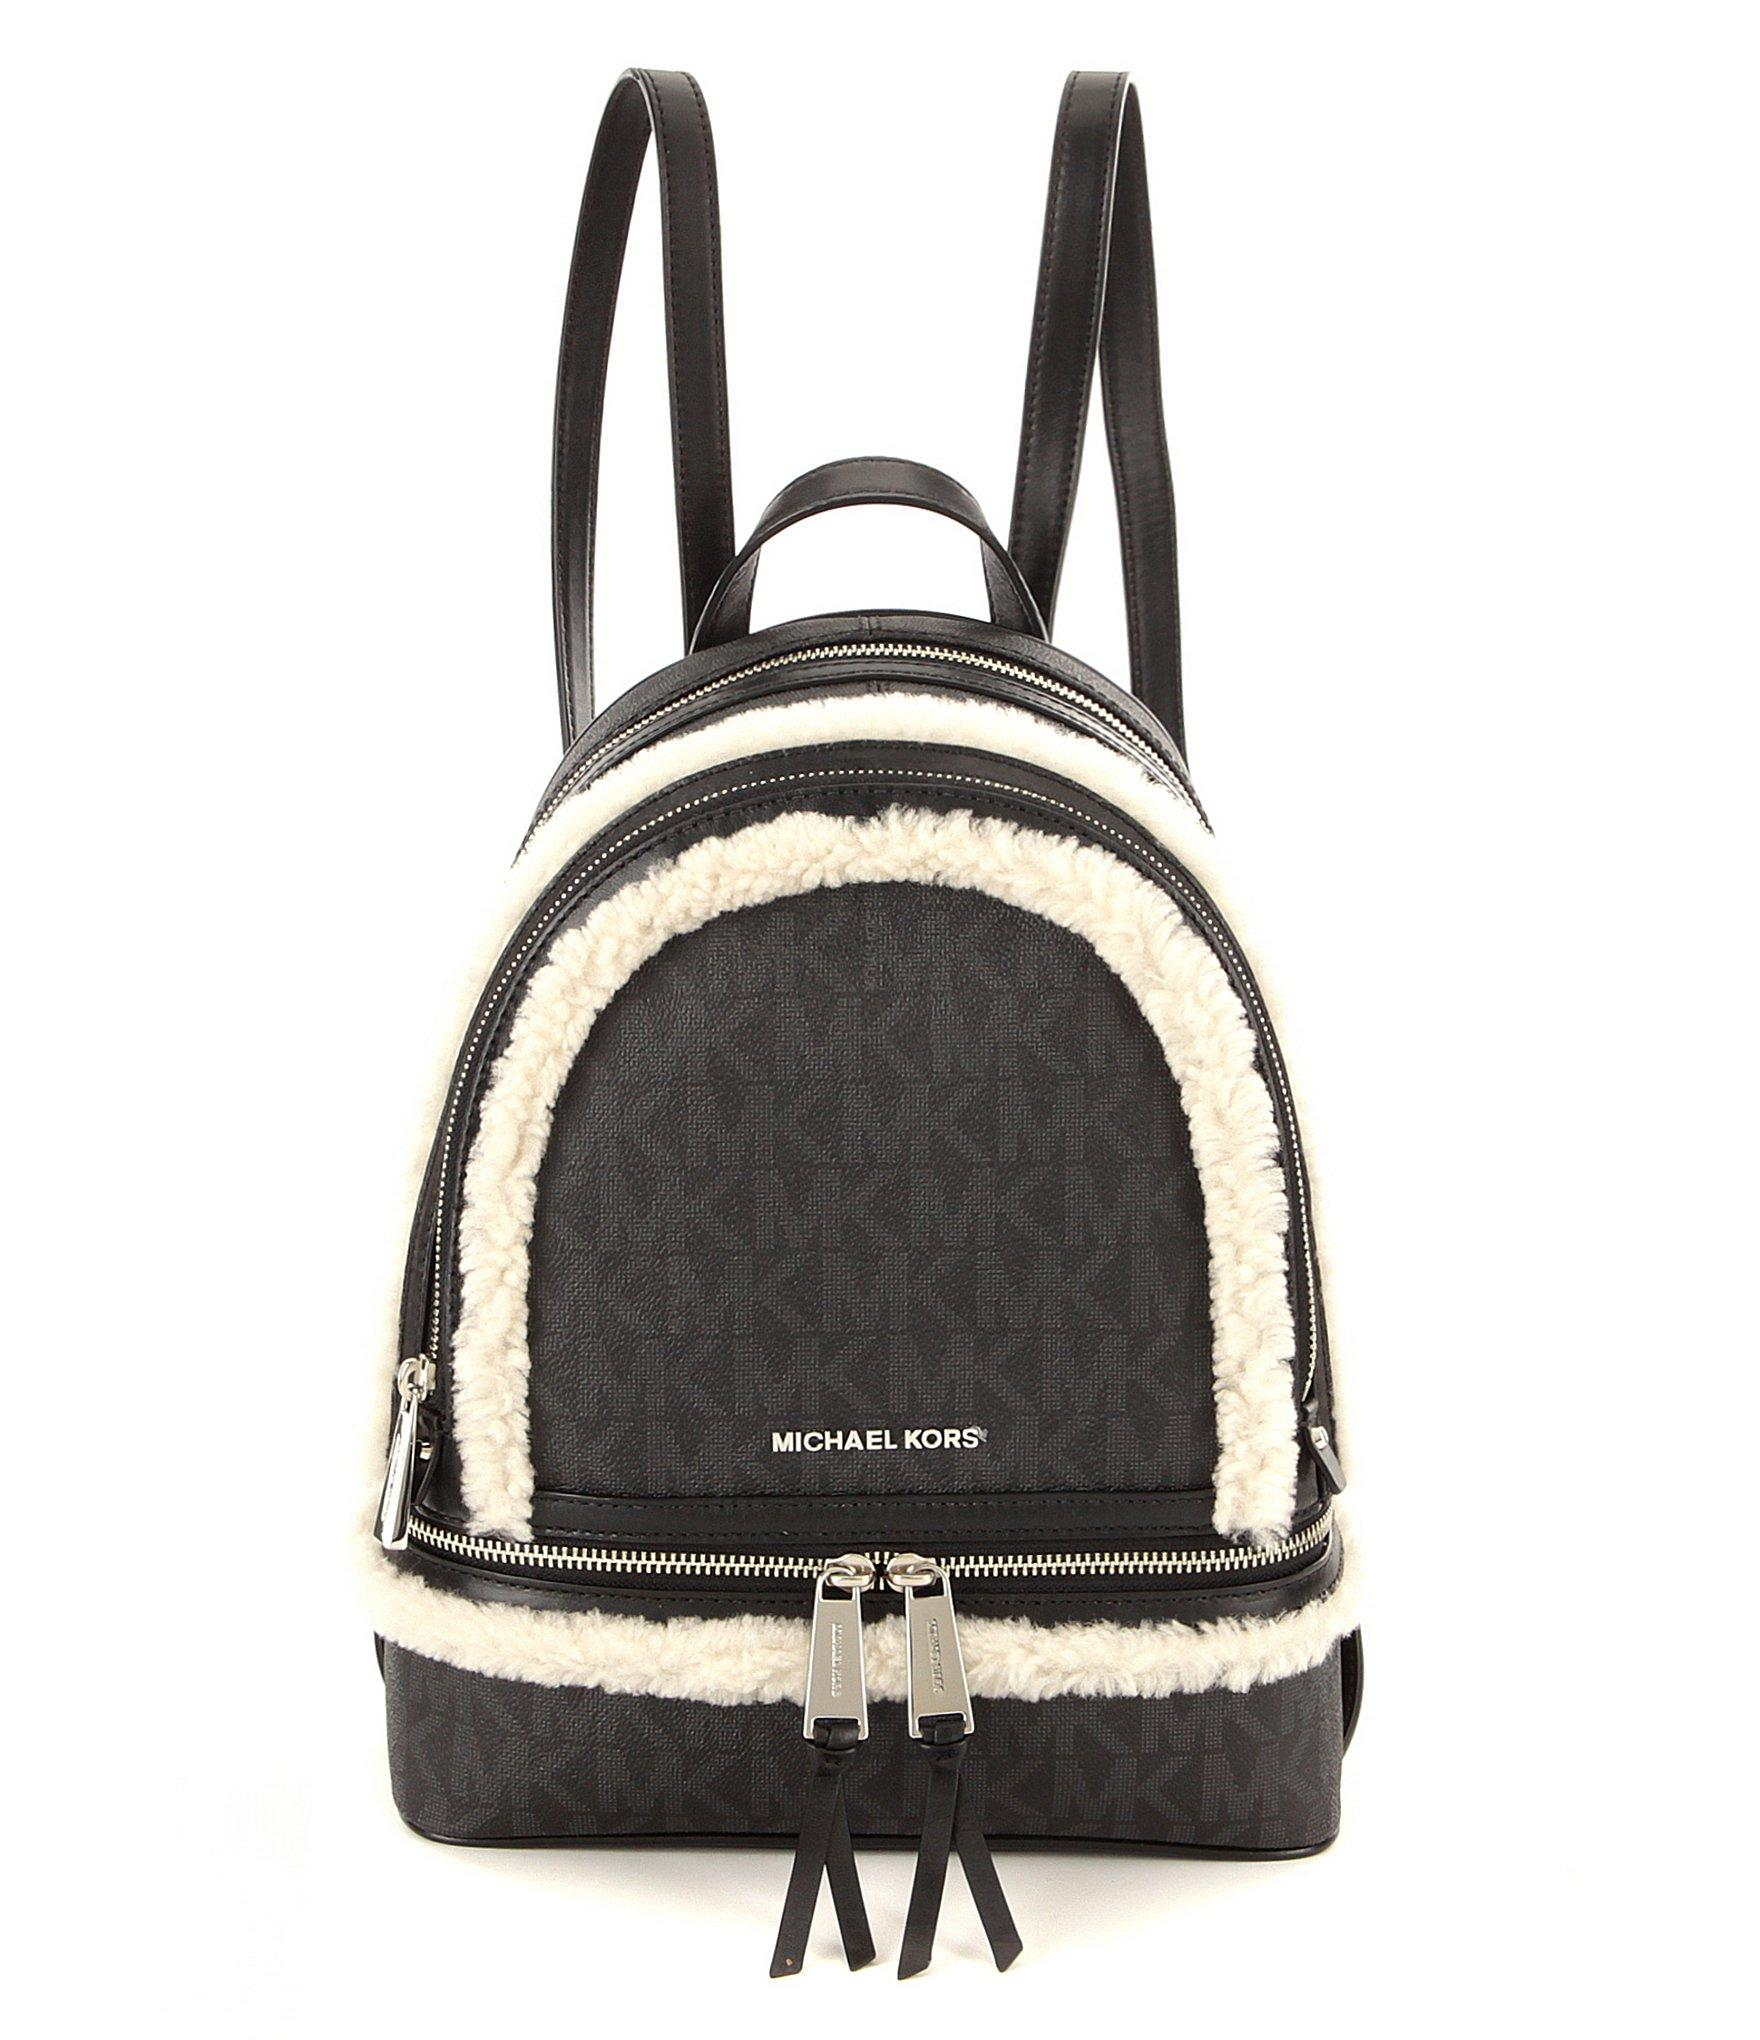 a3f744049250 Gallery. Previously sold at: Dillard's · Women's Michael By Michael Kors  Rhea